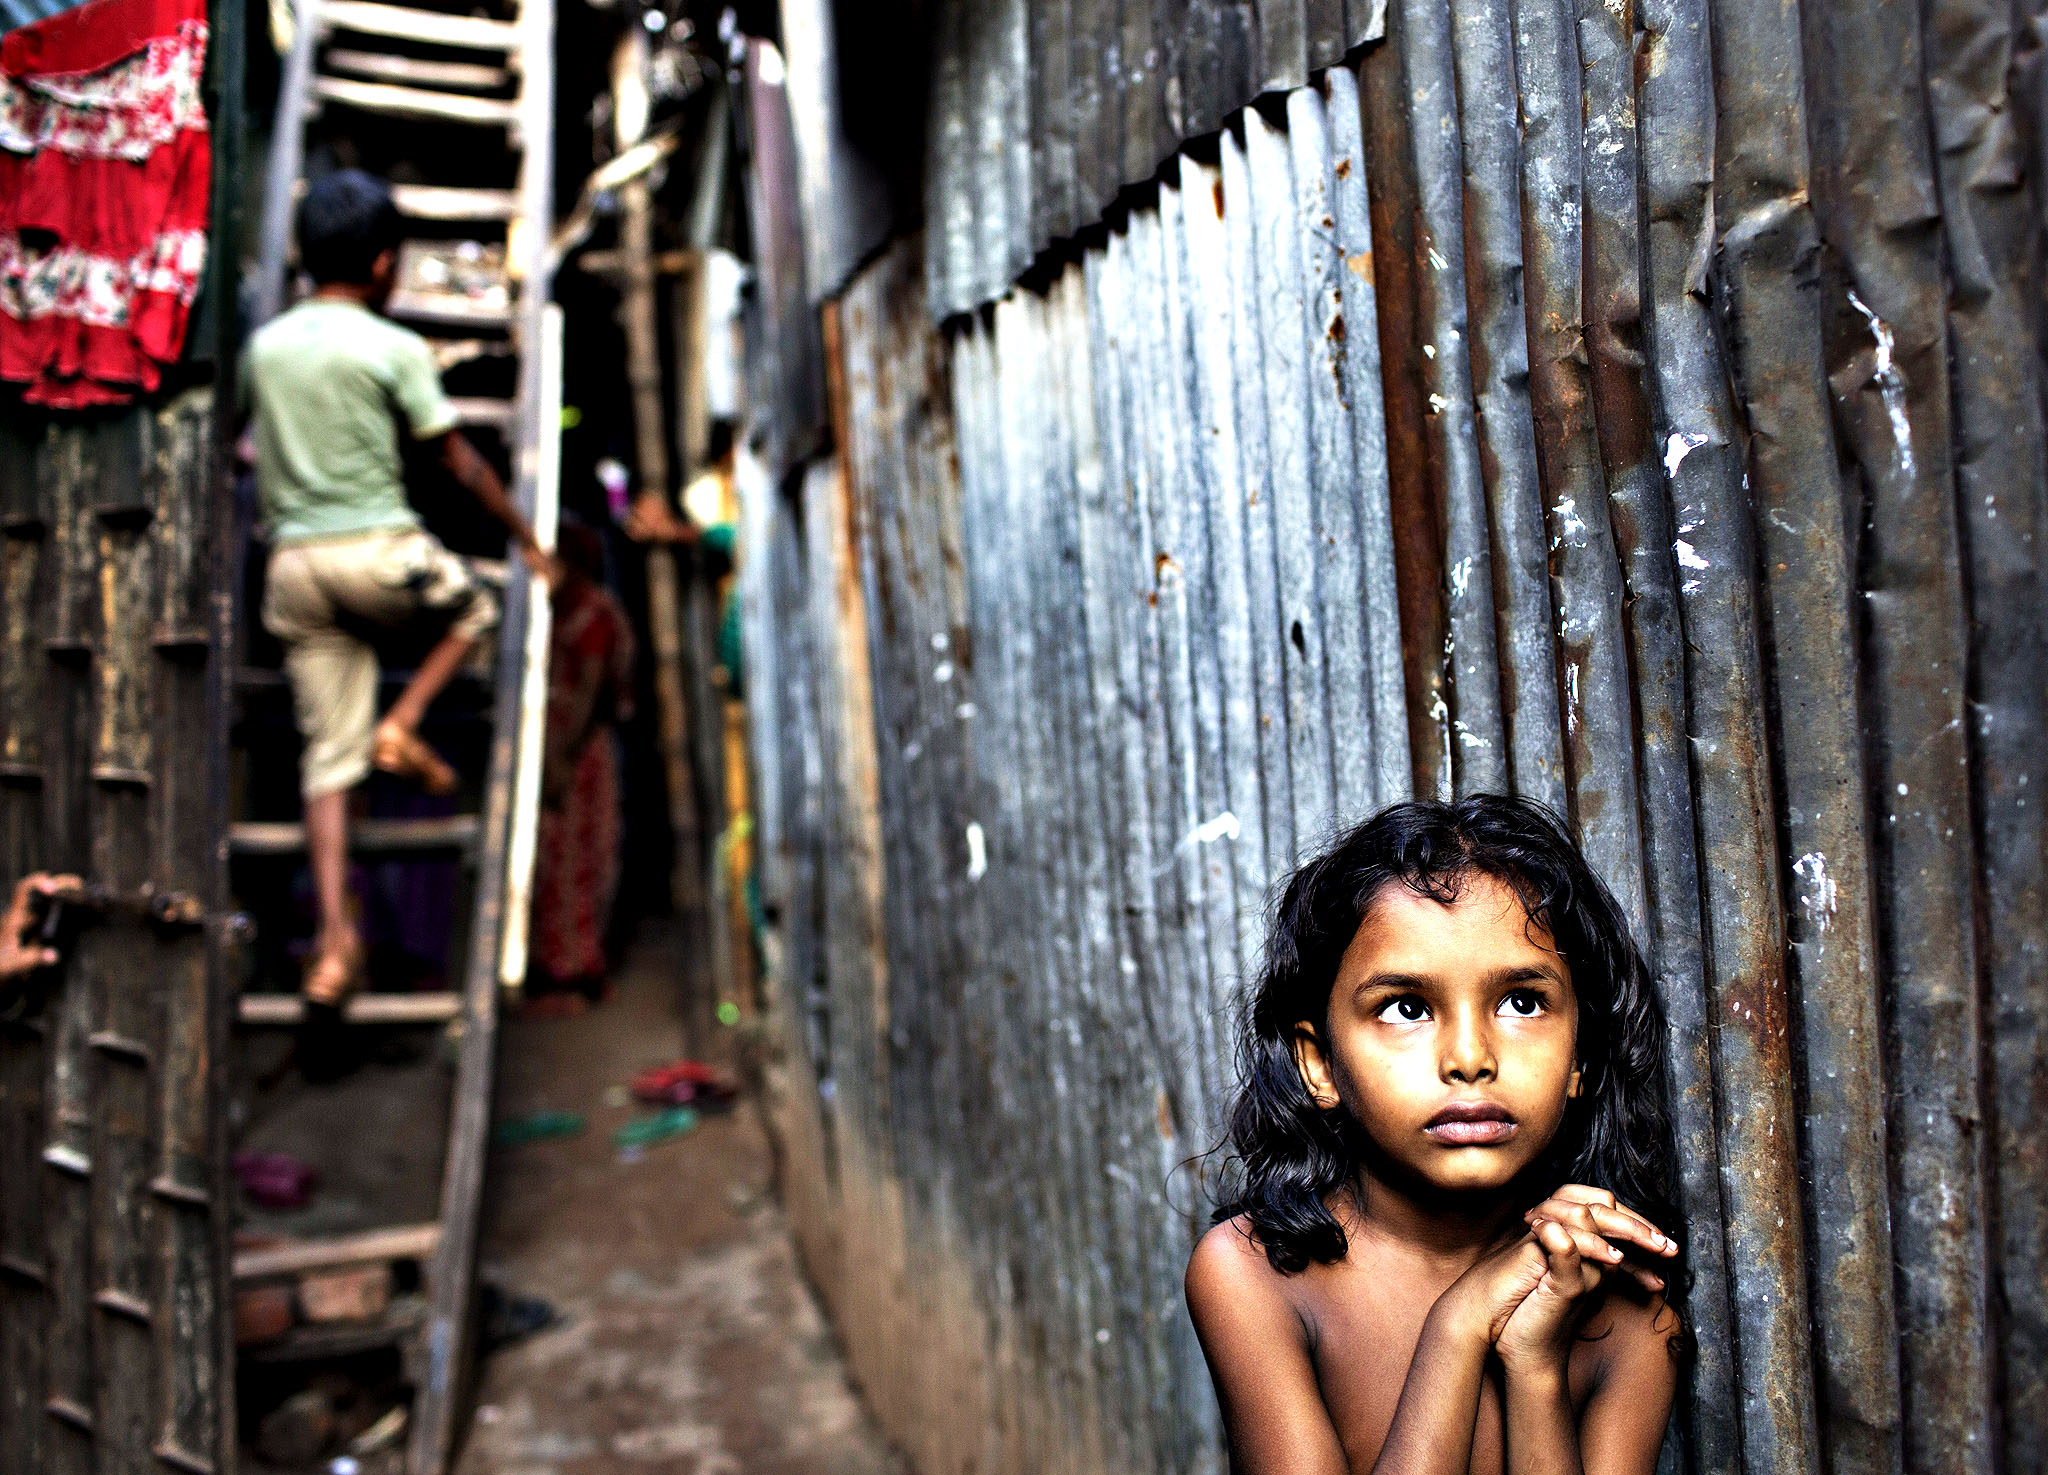 A Bangladeshi child stands in an alley as a boy climbs a ladder outside their home at a slum in Dhaka, Bangladesh, Friday, Oct. 17, 2014. The International Day for the Eradication of Poverty is observed on October 17 and is designated to promote awareness of the need to eradicate poverty and destitution in all countries.